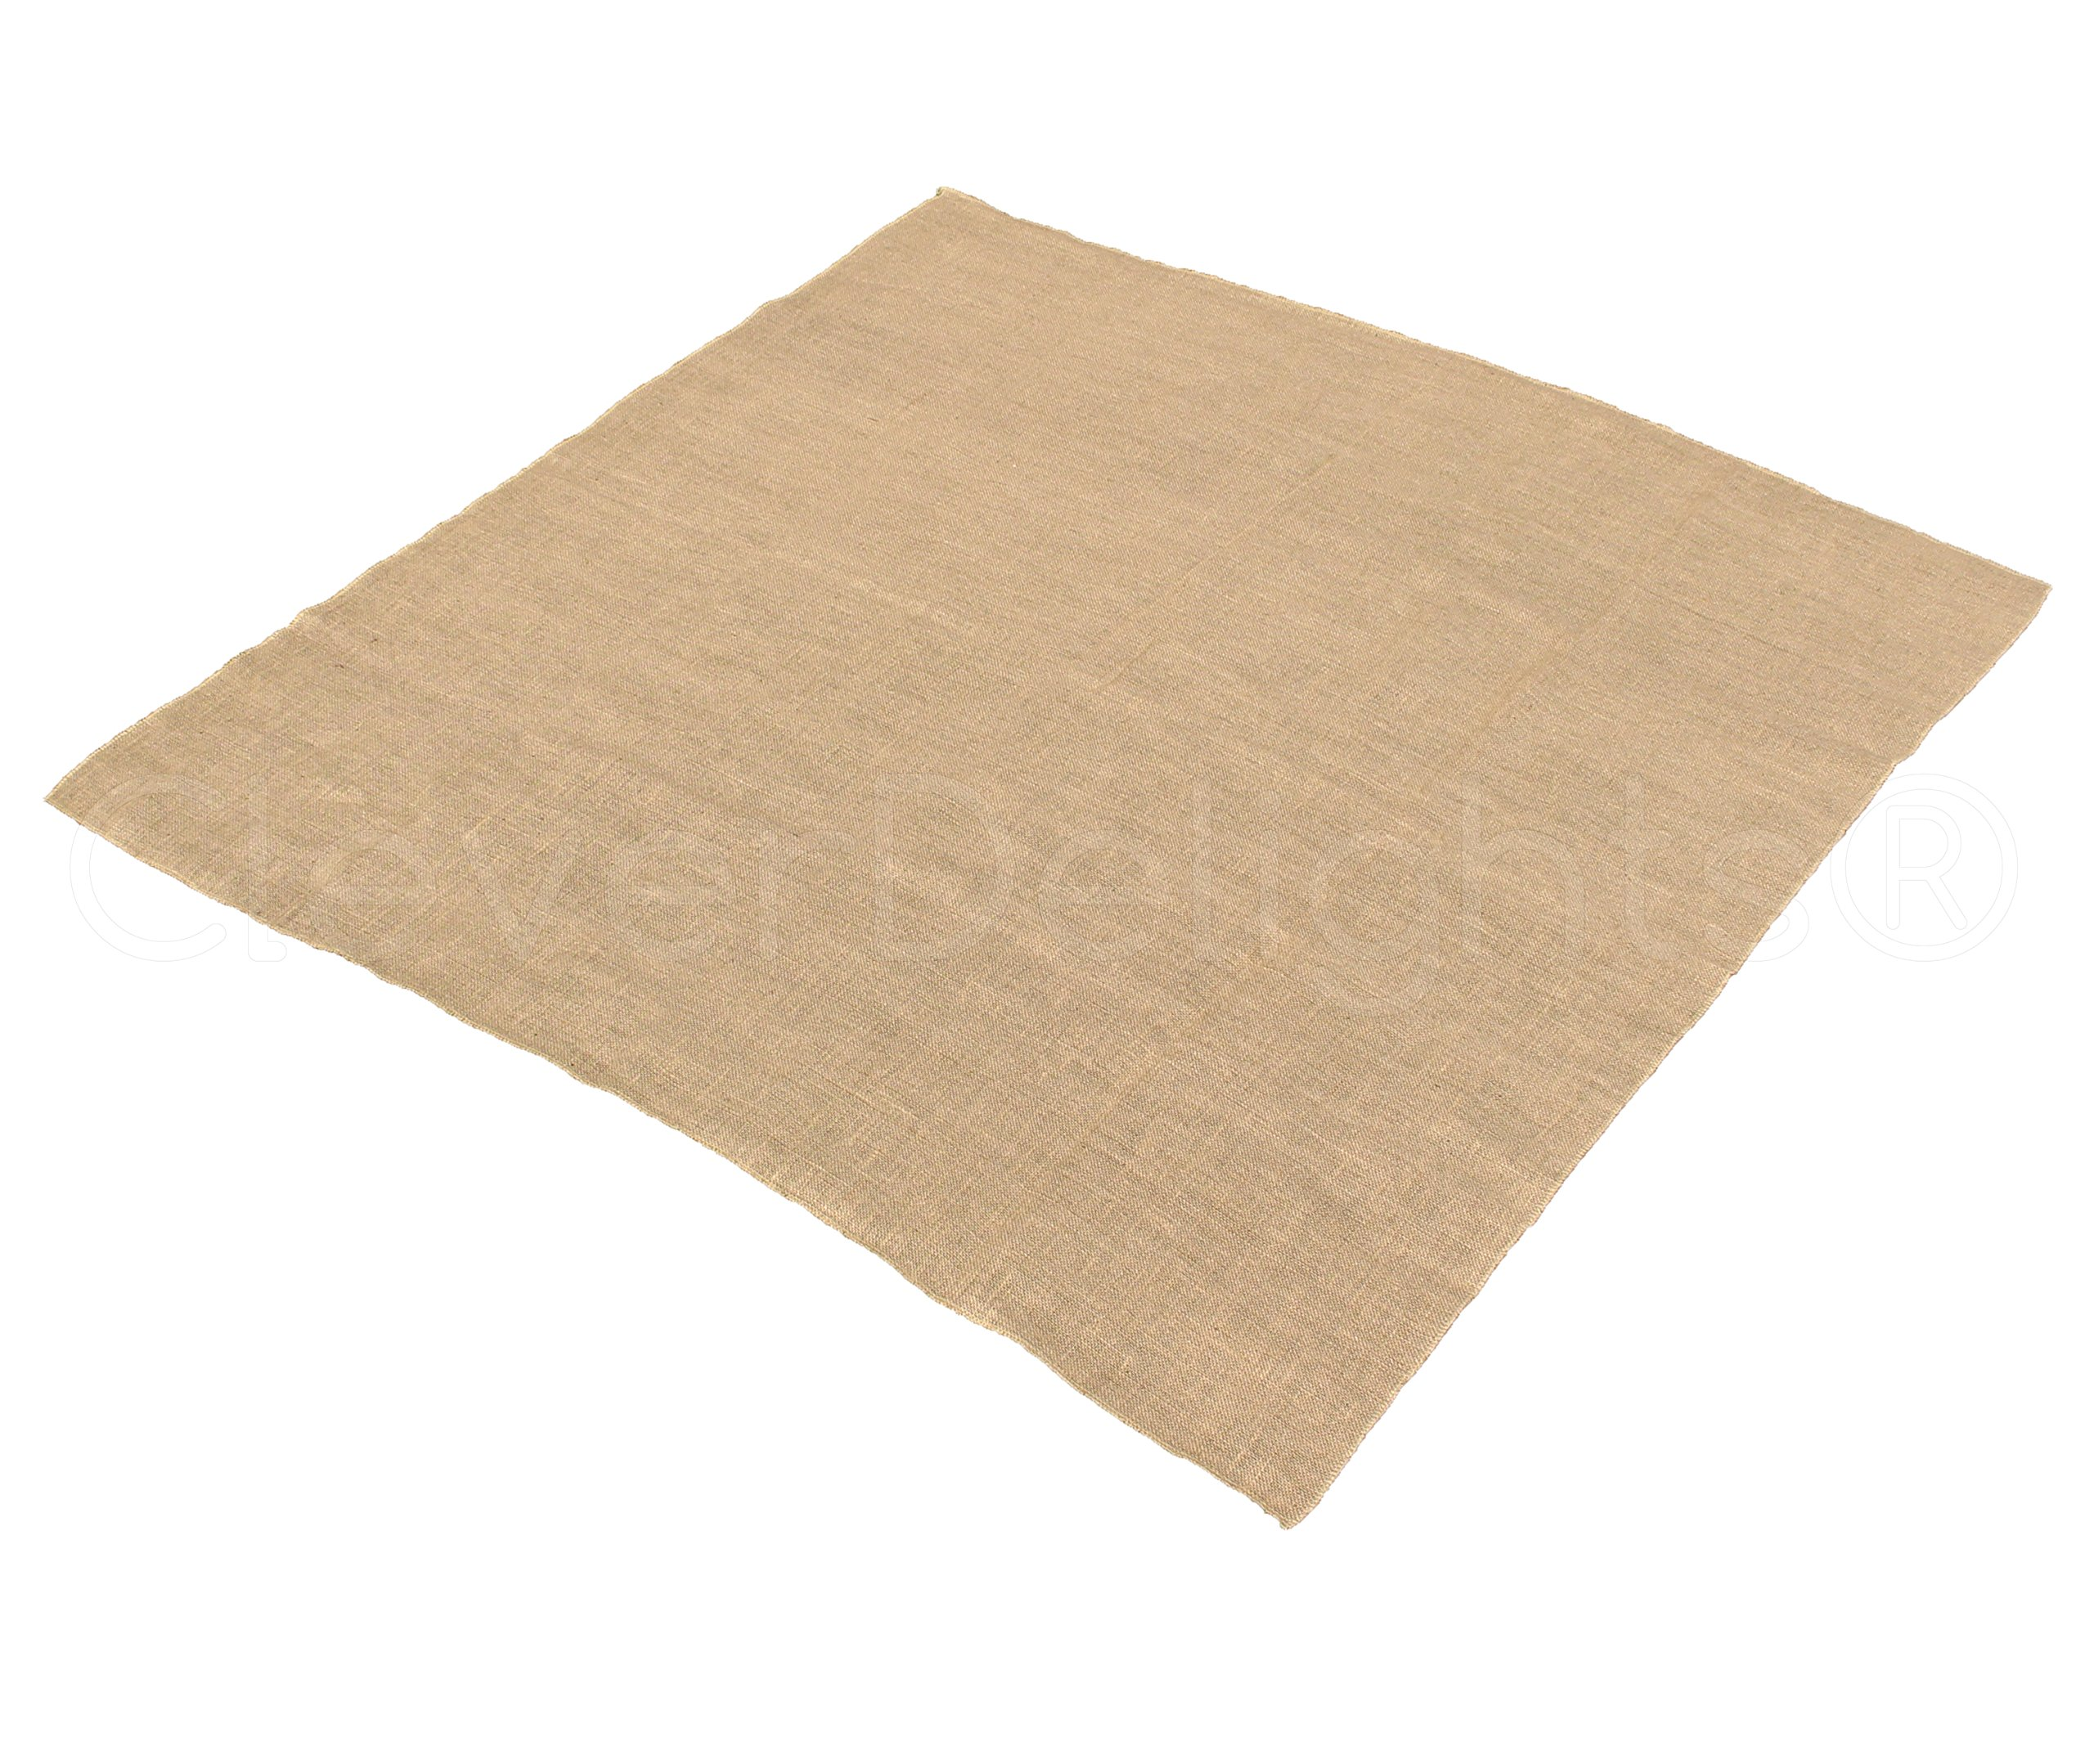 10 Pk - CleverDelights Square Burlap Tablecloth - 60'' x 60'' - Premium Jute Burlap Overlay - Finished Edge